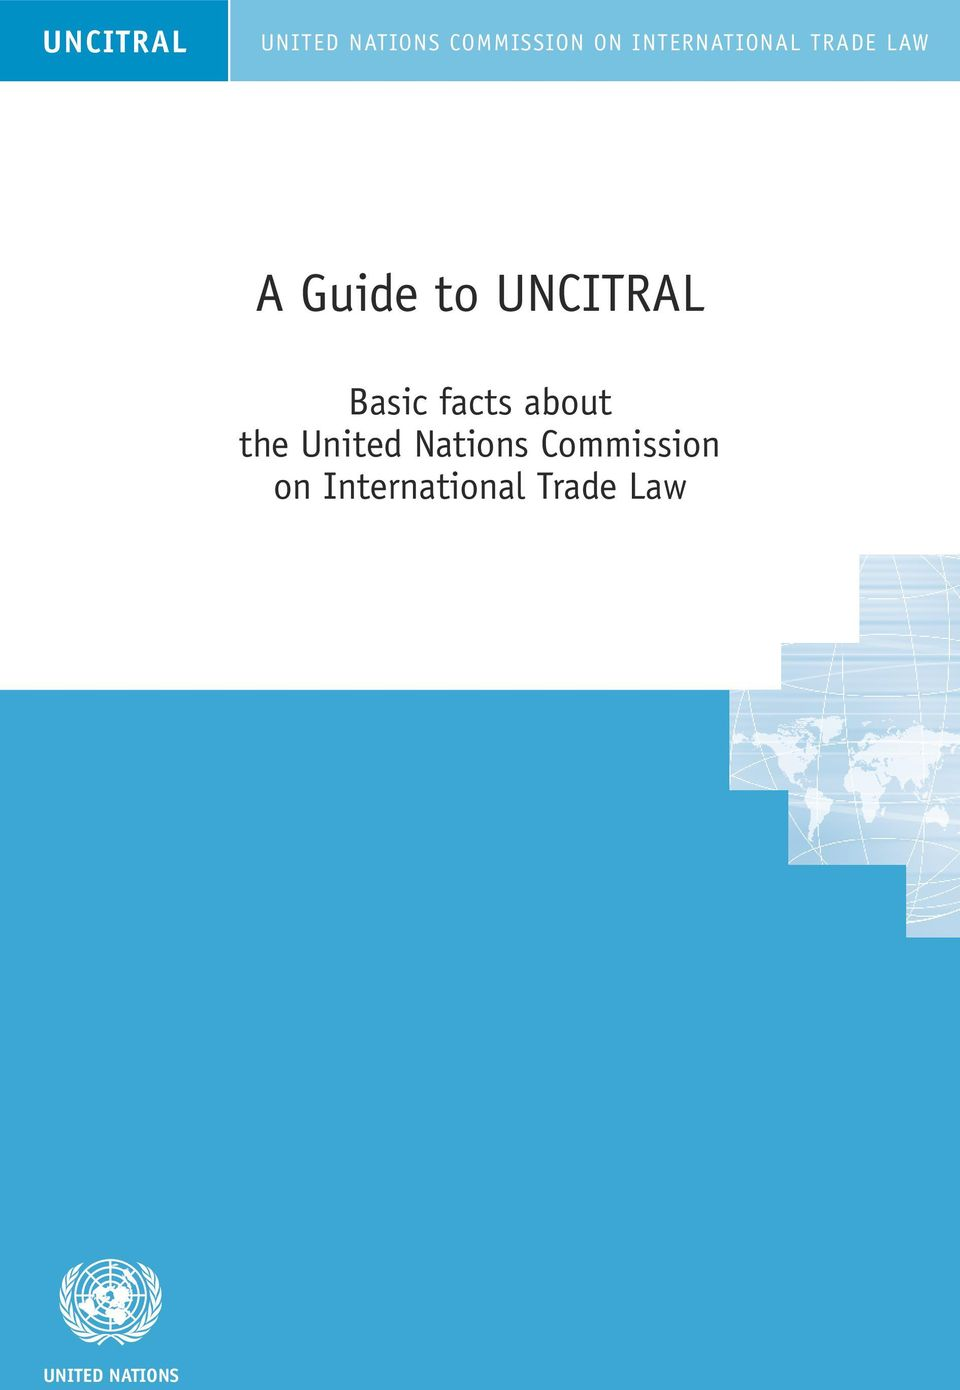 UNCITRAL Basic facts about the United